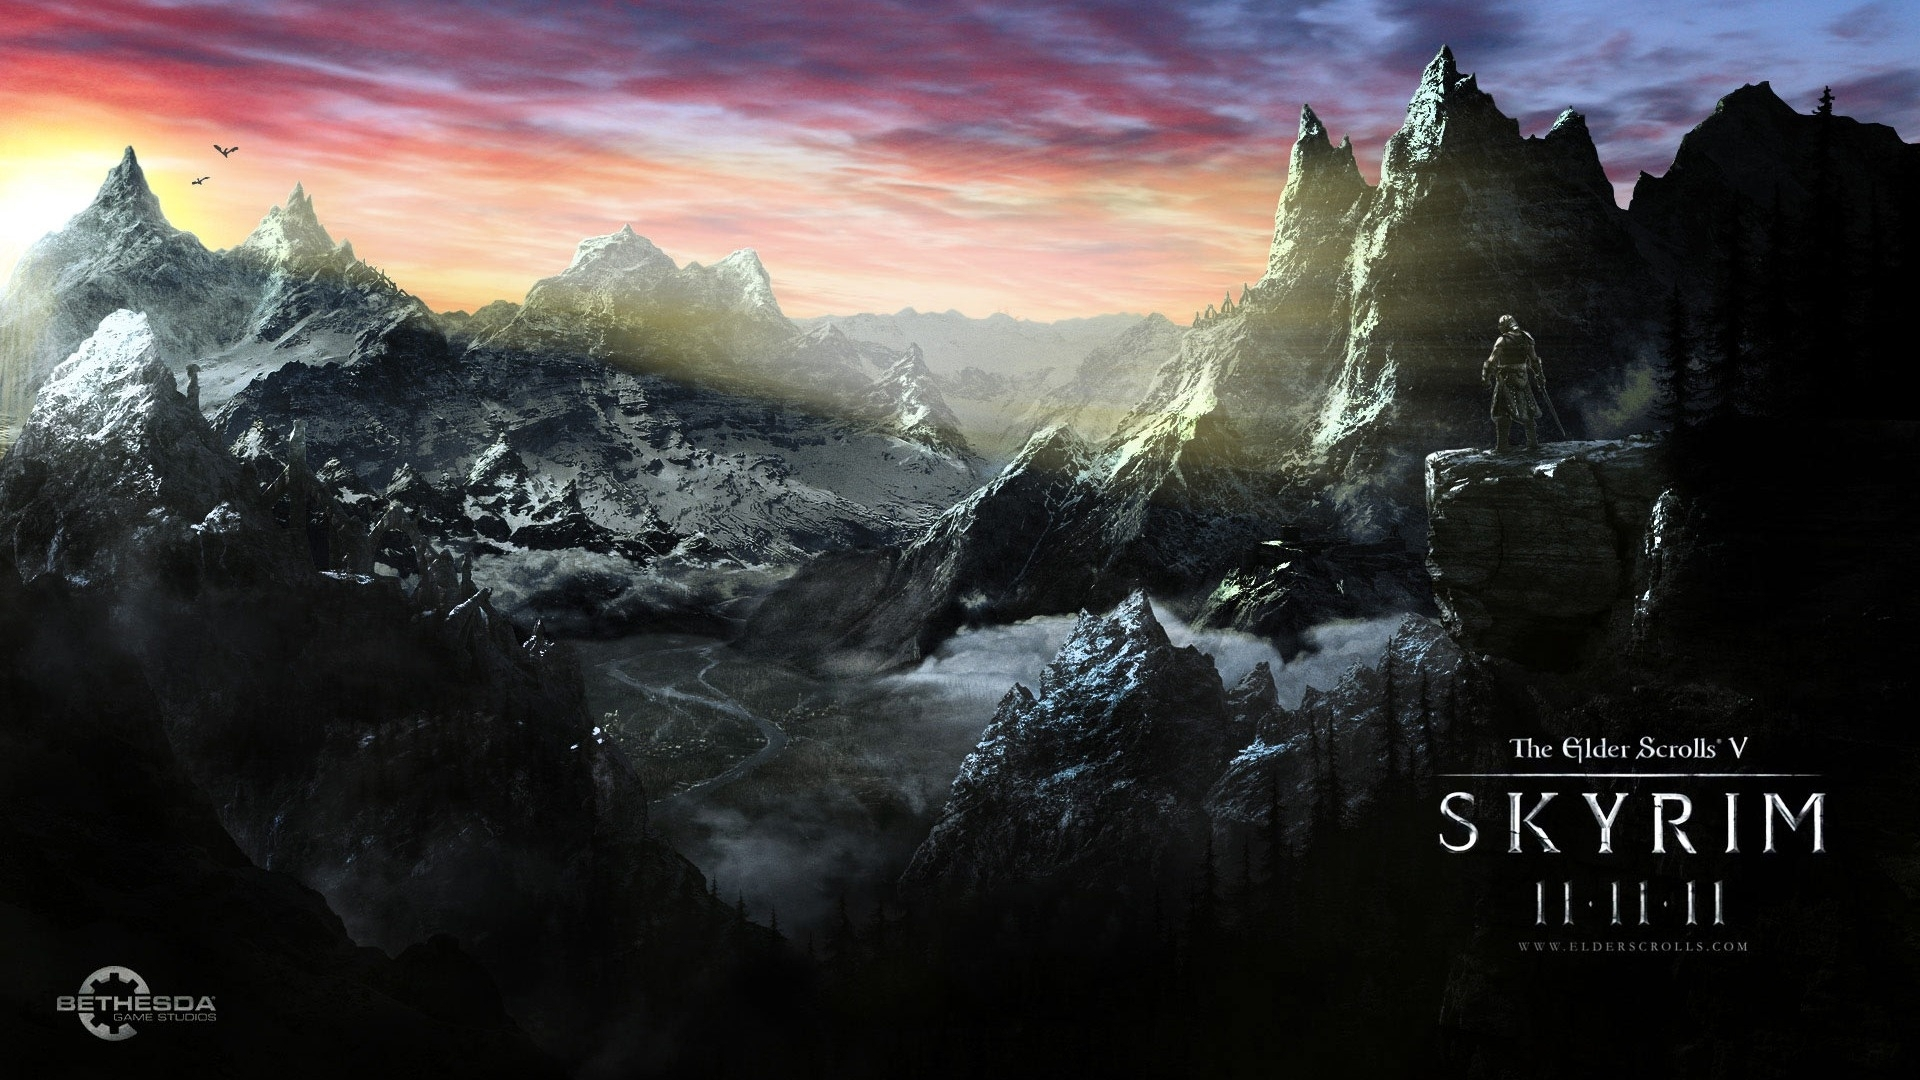 the elder scrolls v: skyrim hd wallpapers #15 - 1920x1080 fond d